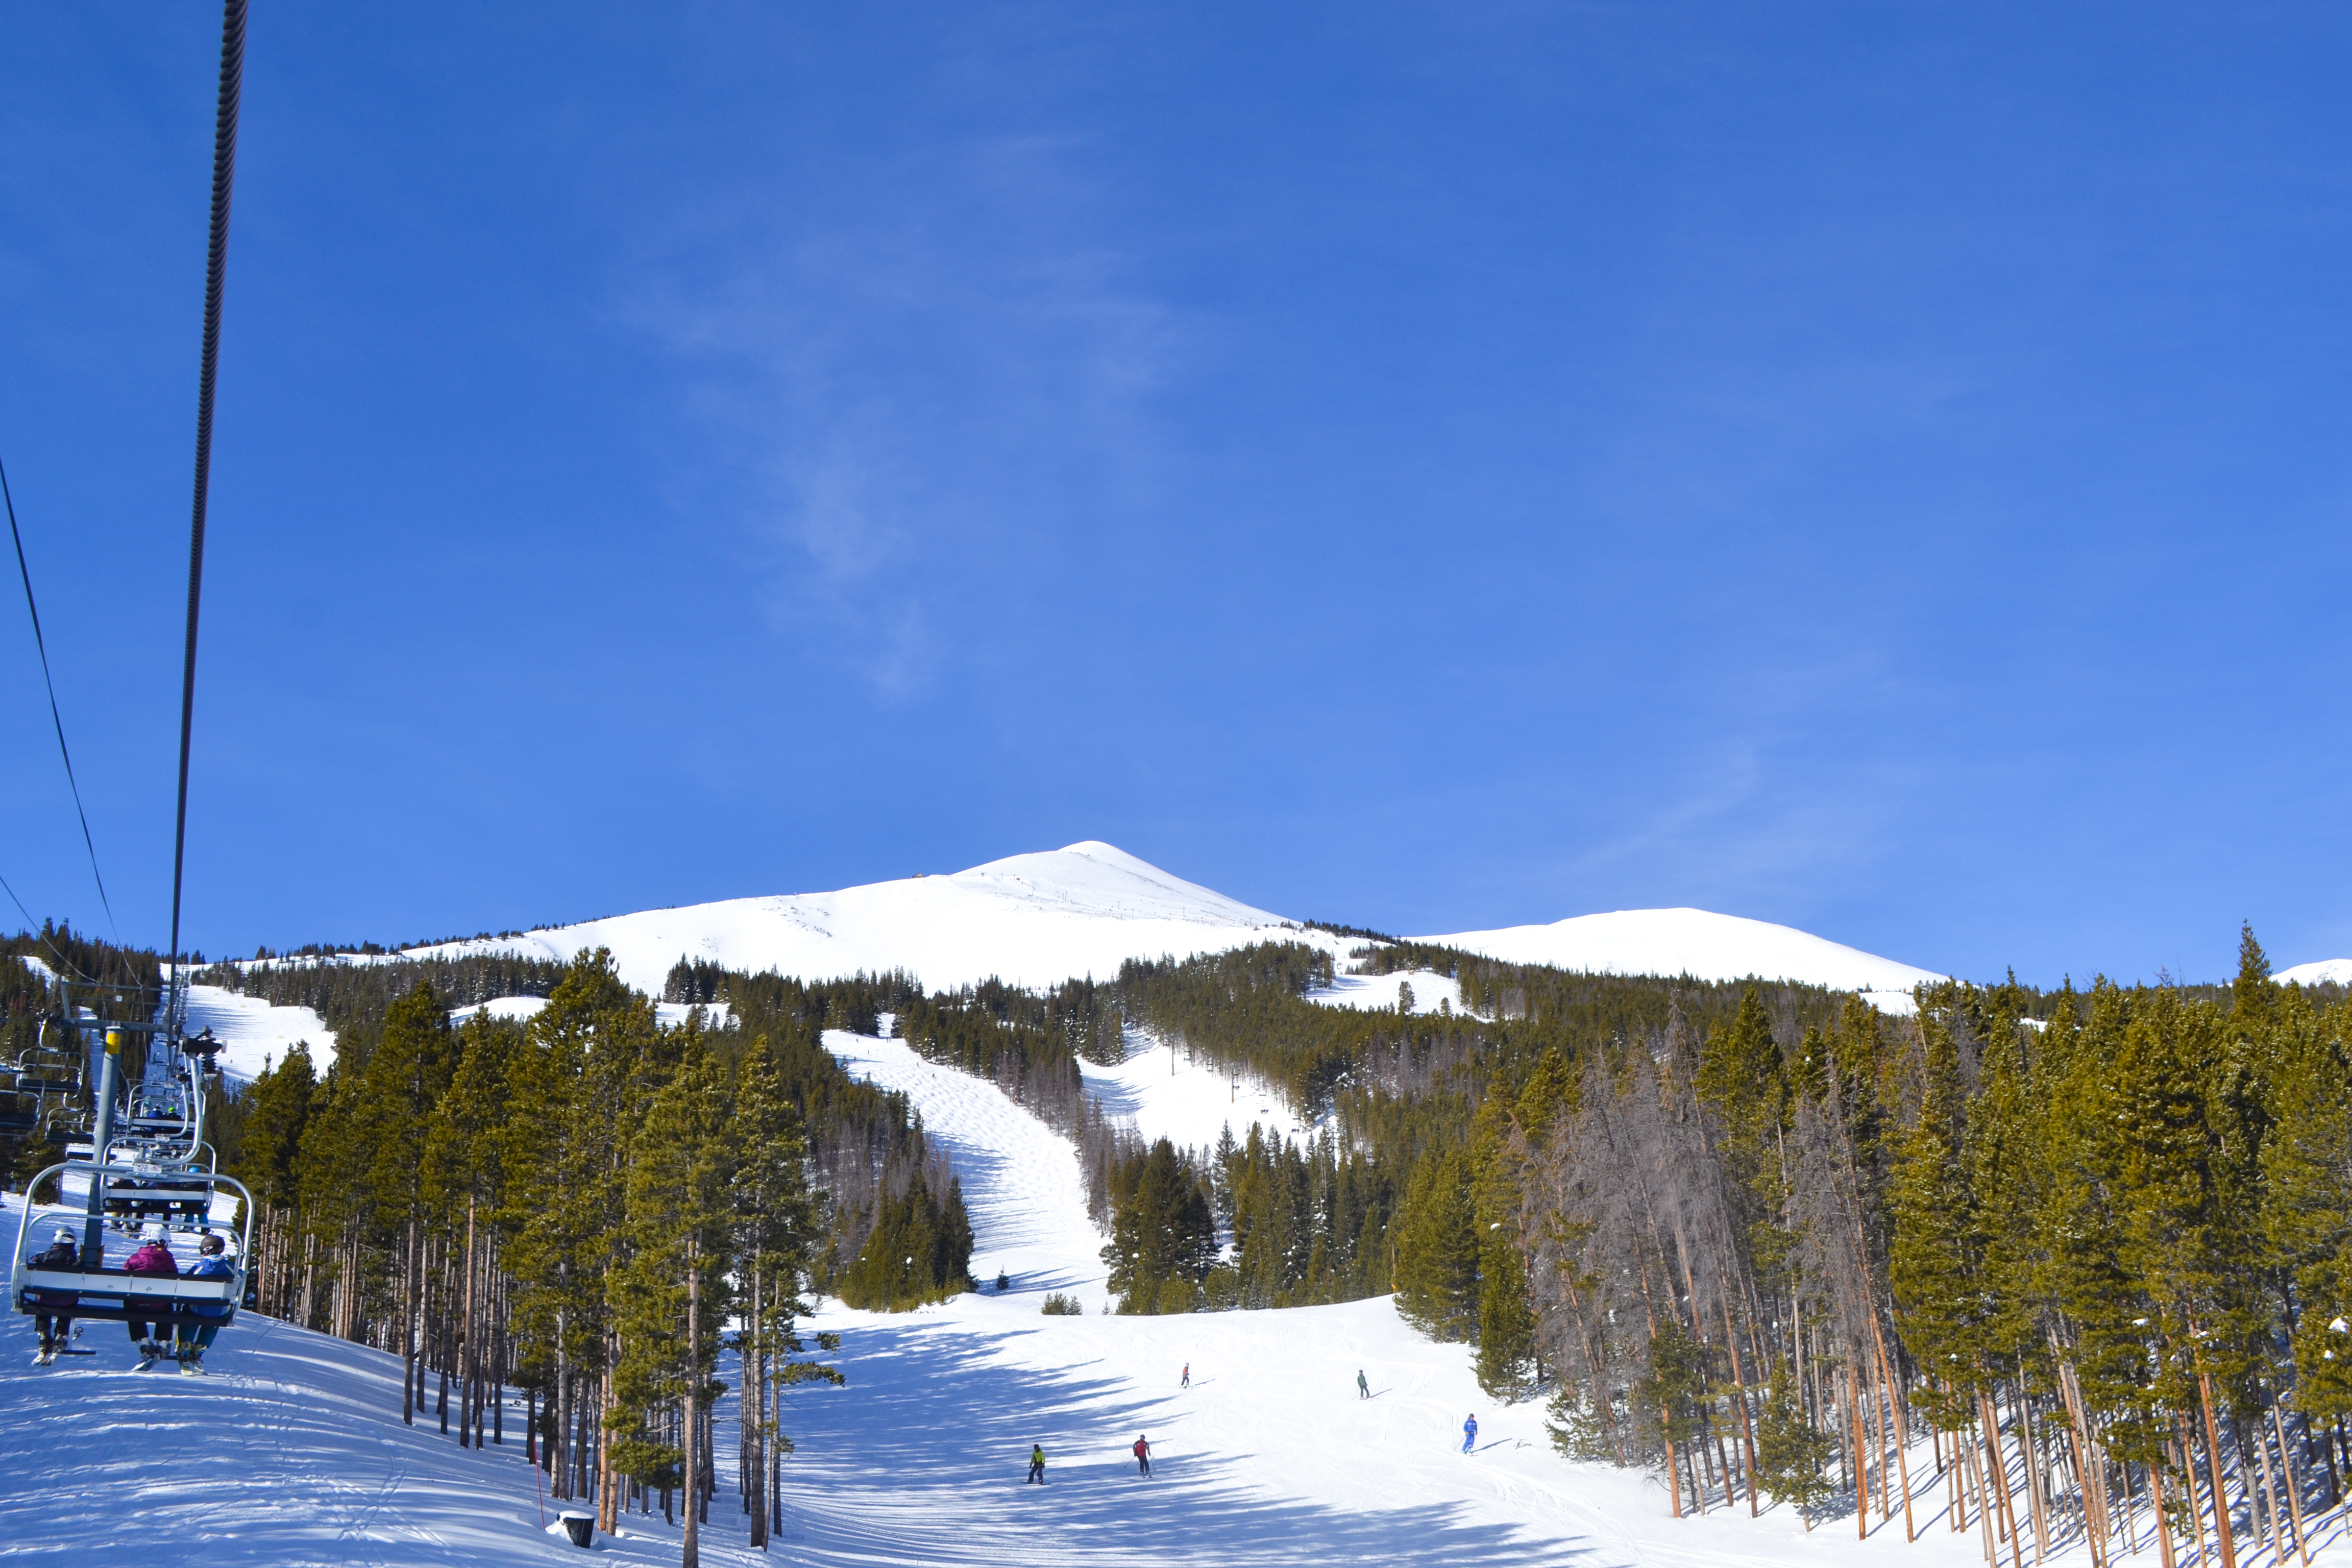 Sunny and warm February day in Breckenridge